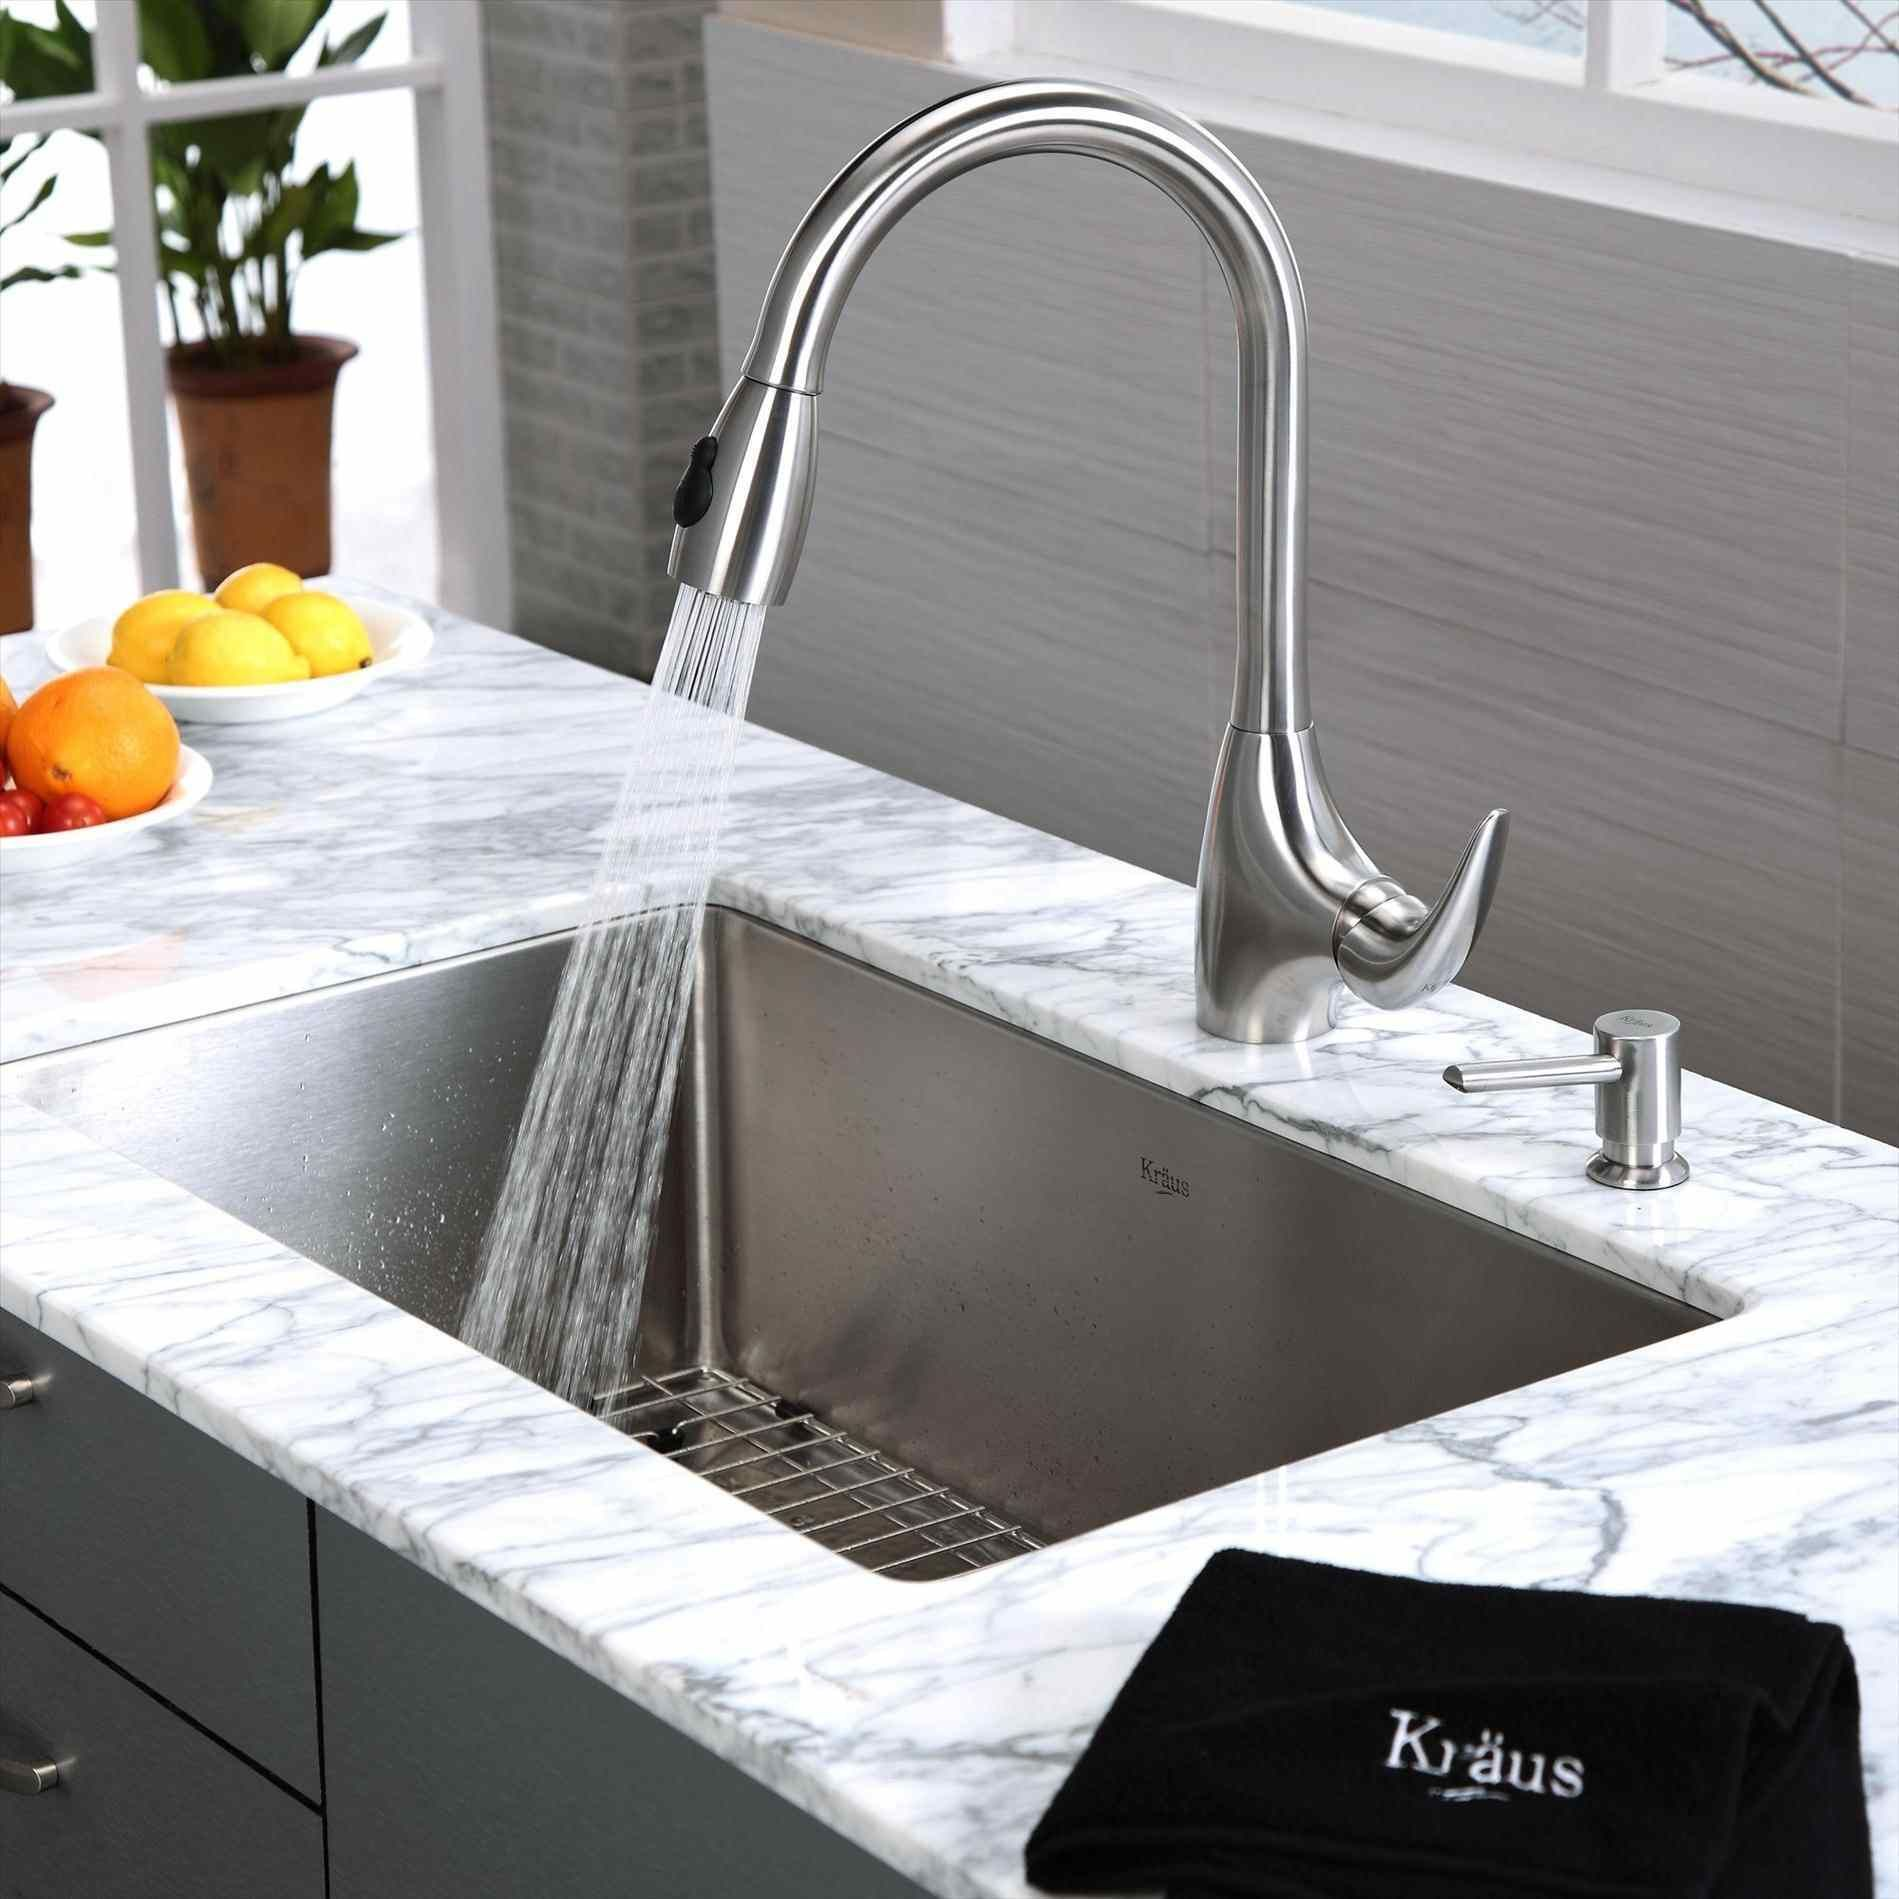 27 Inch Undermount Stainless Steel Sink